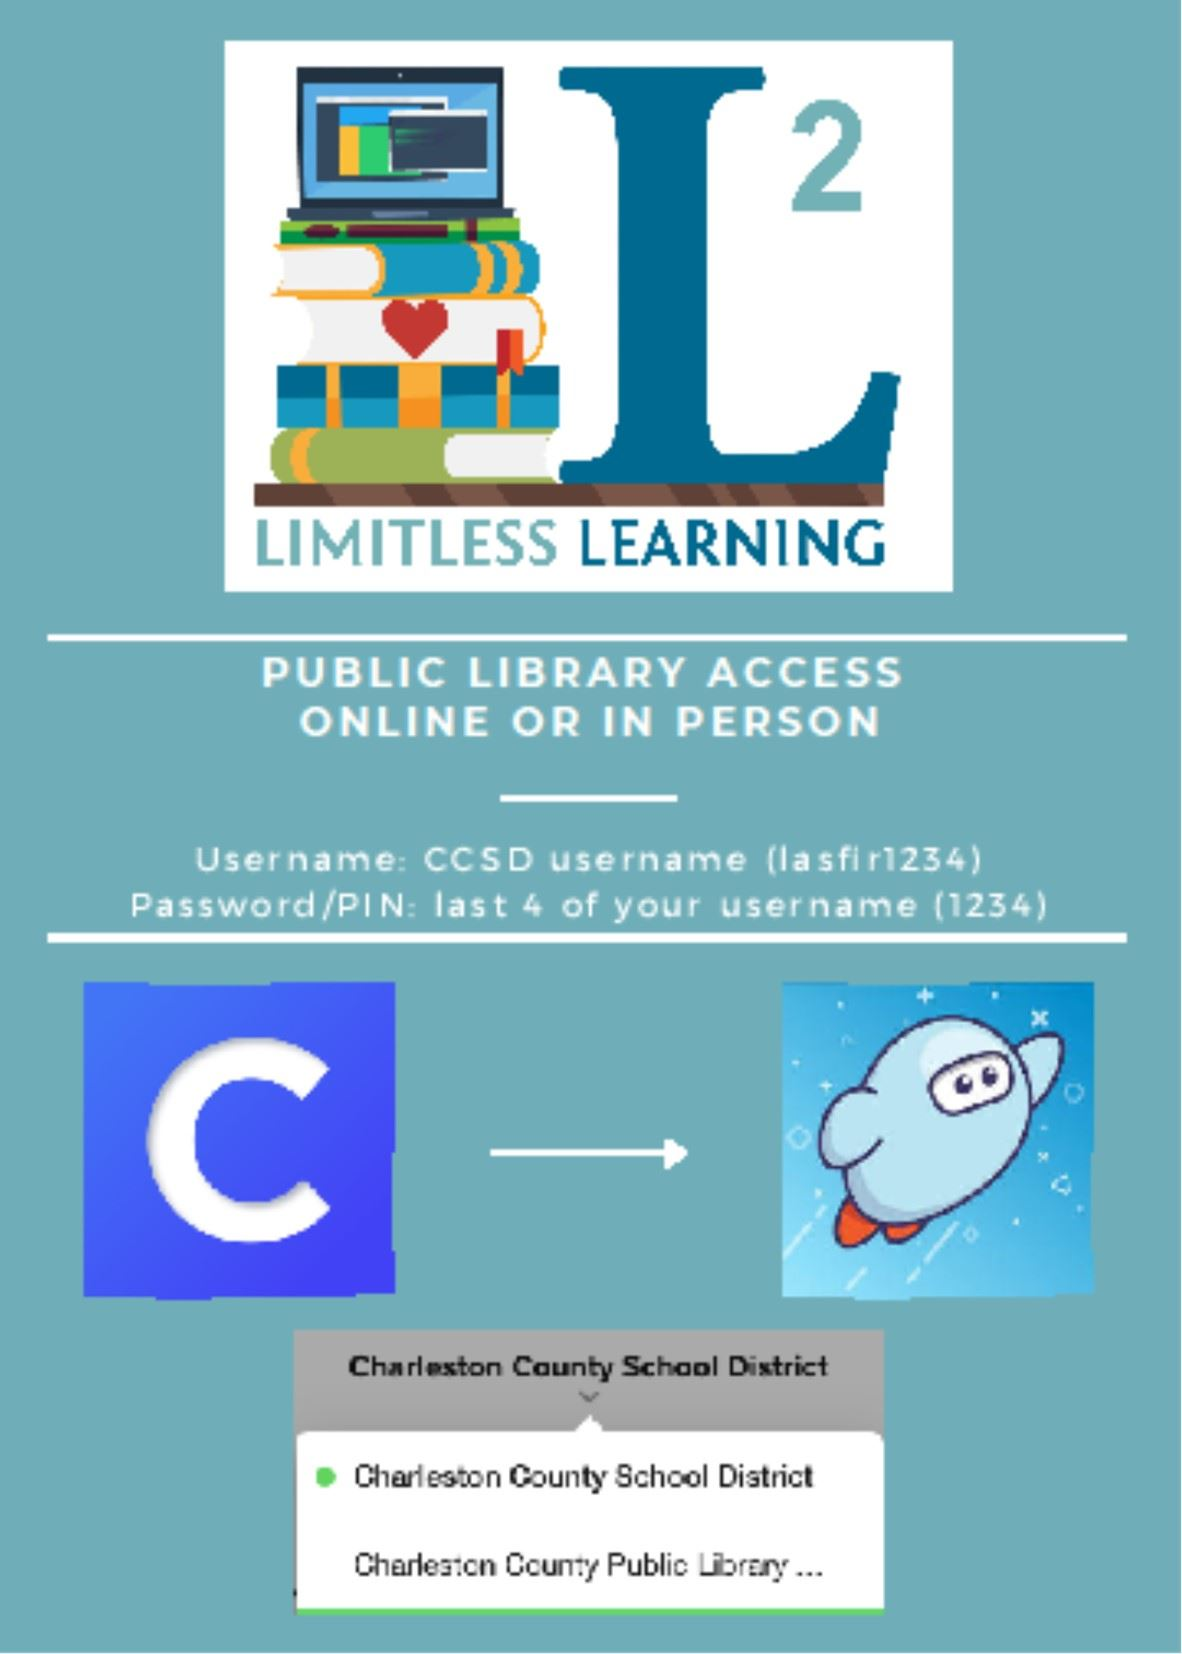 Need help accessing library online?